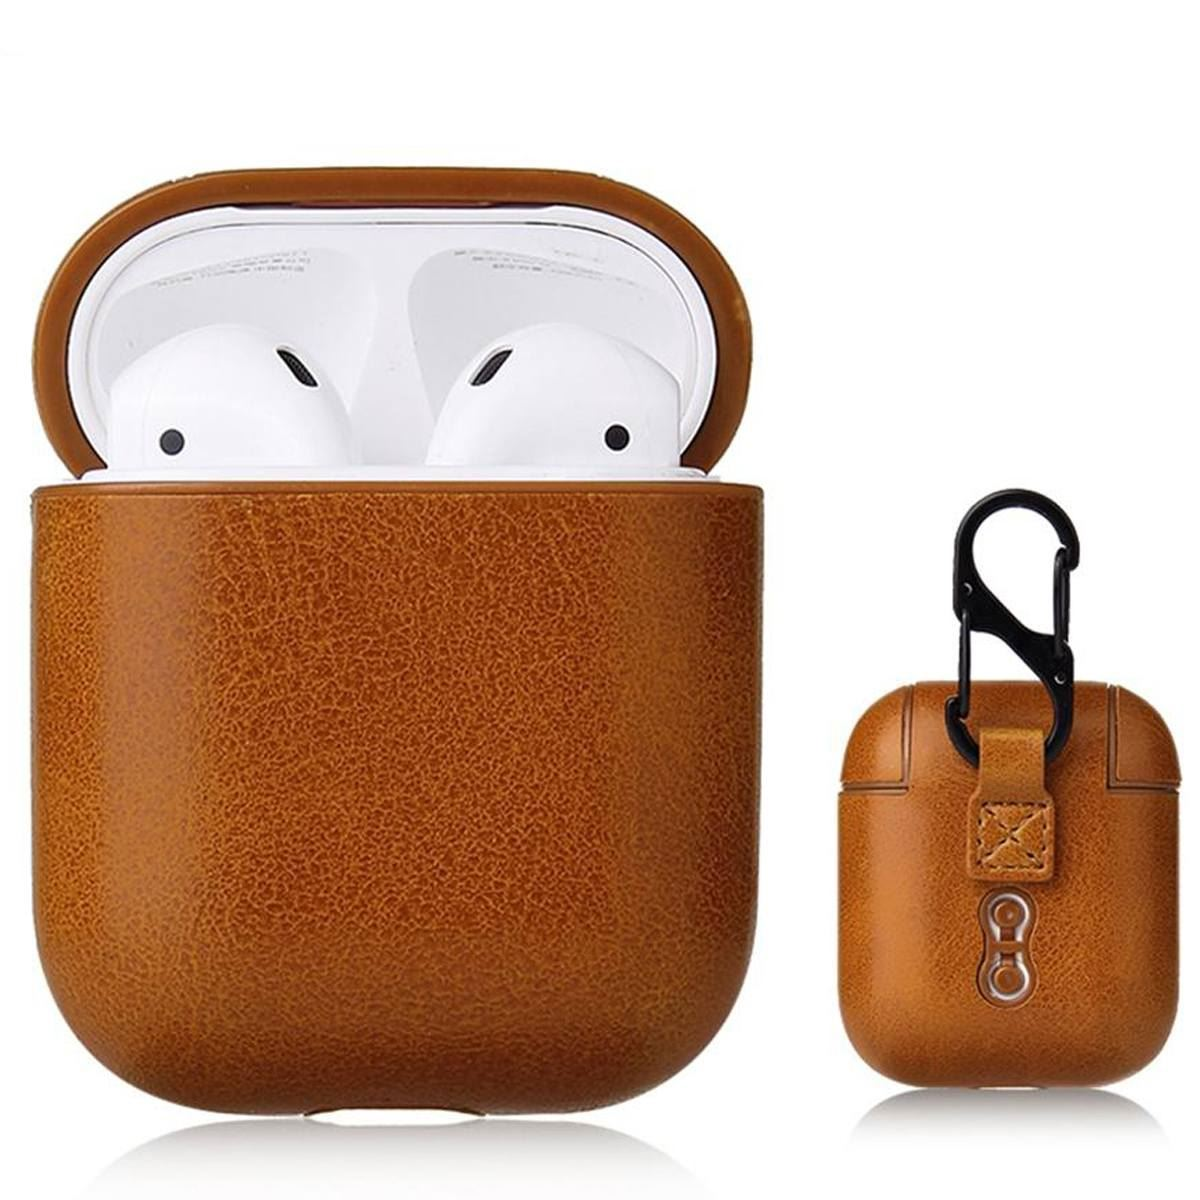 Case-For-Apple-Airpods-1-2-1st-2nd-Gen-Soft-Leather-Skin-Earphones-PU-Cover thumbnail 15